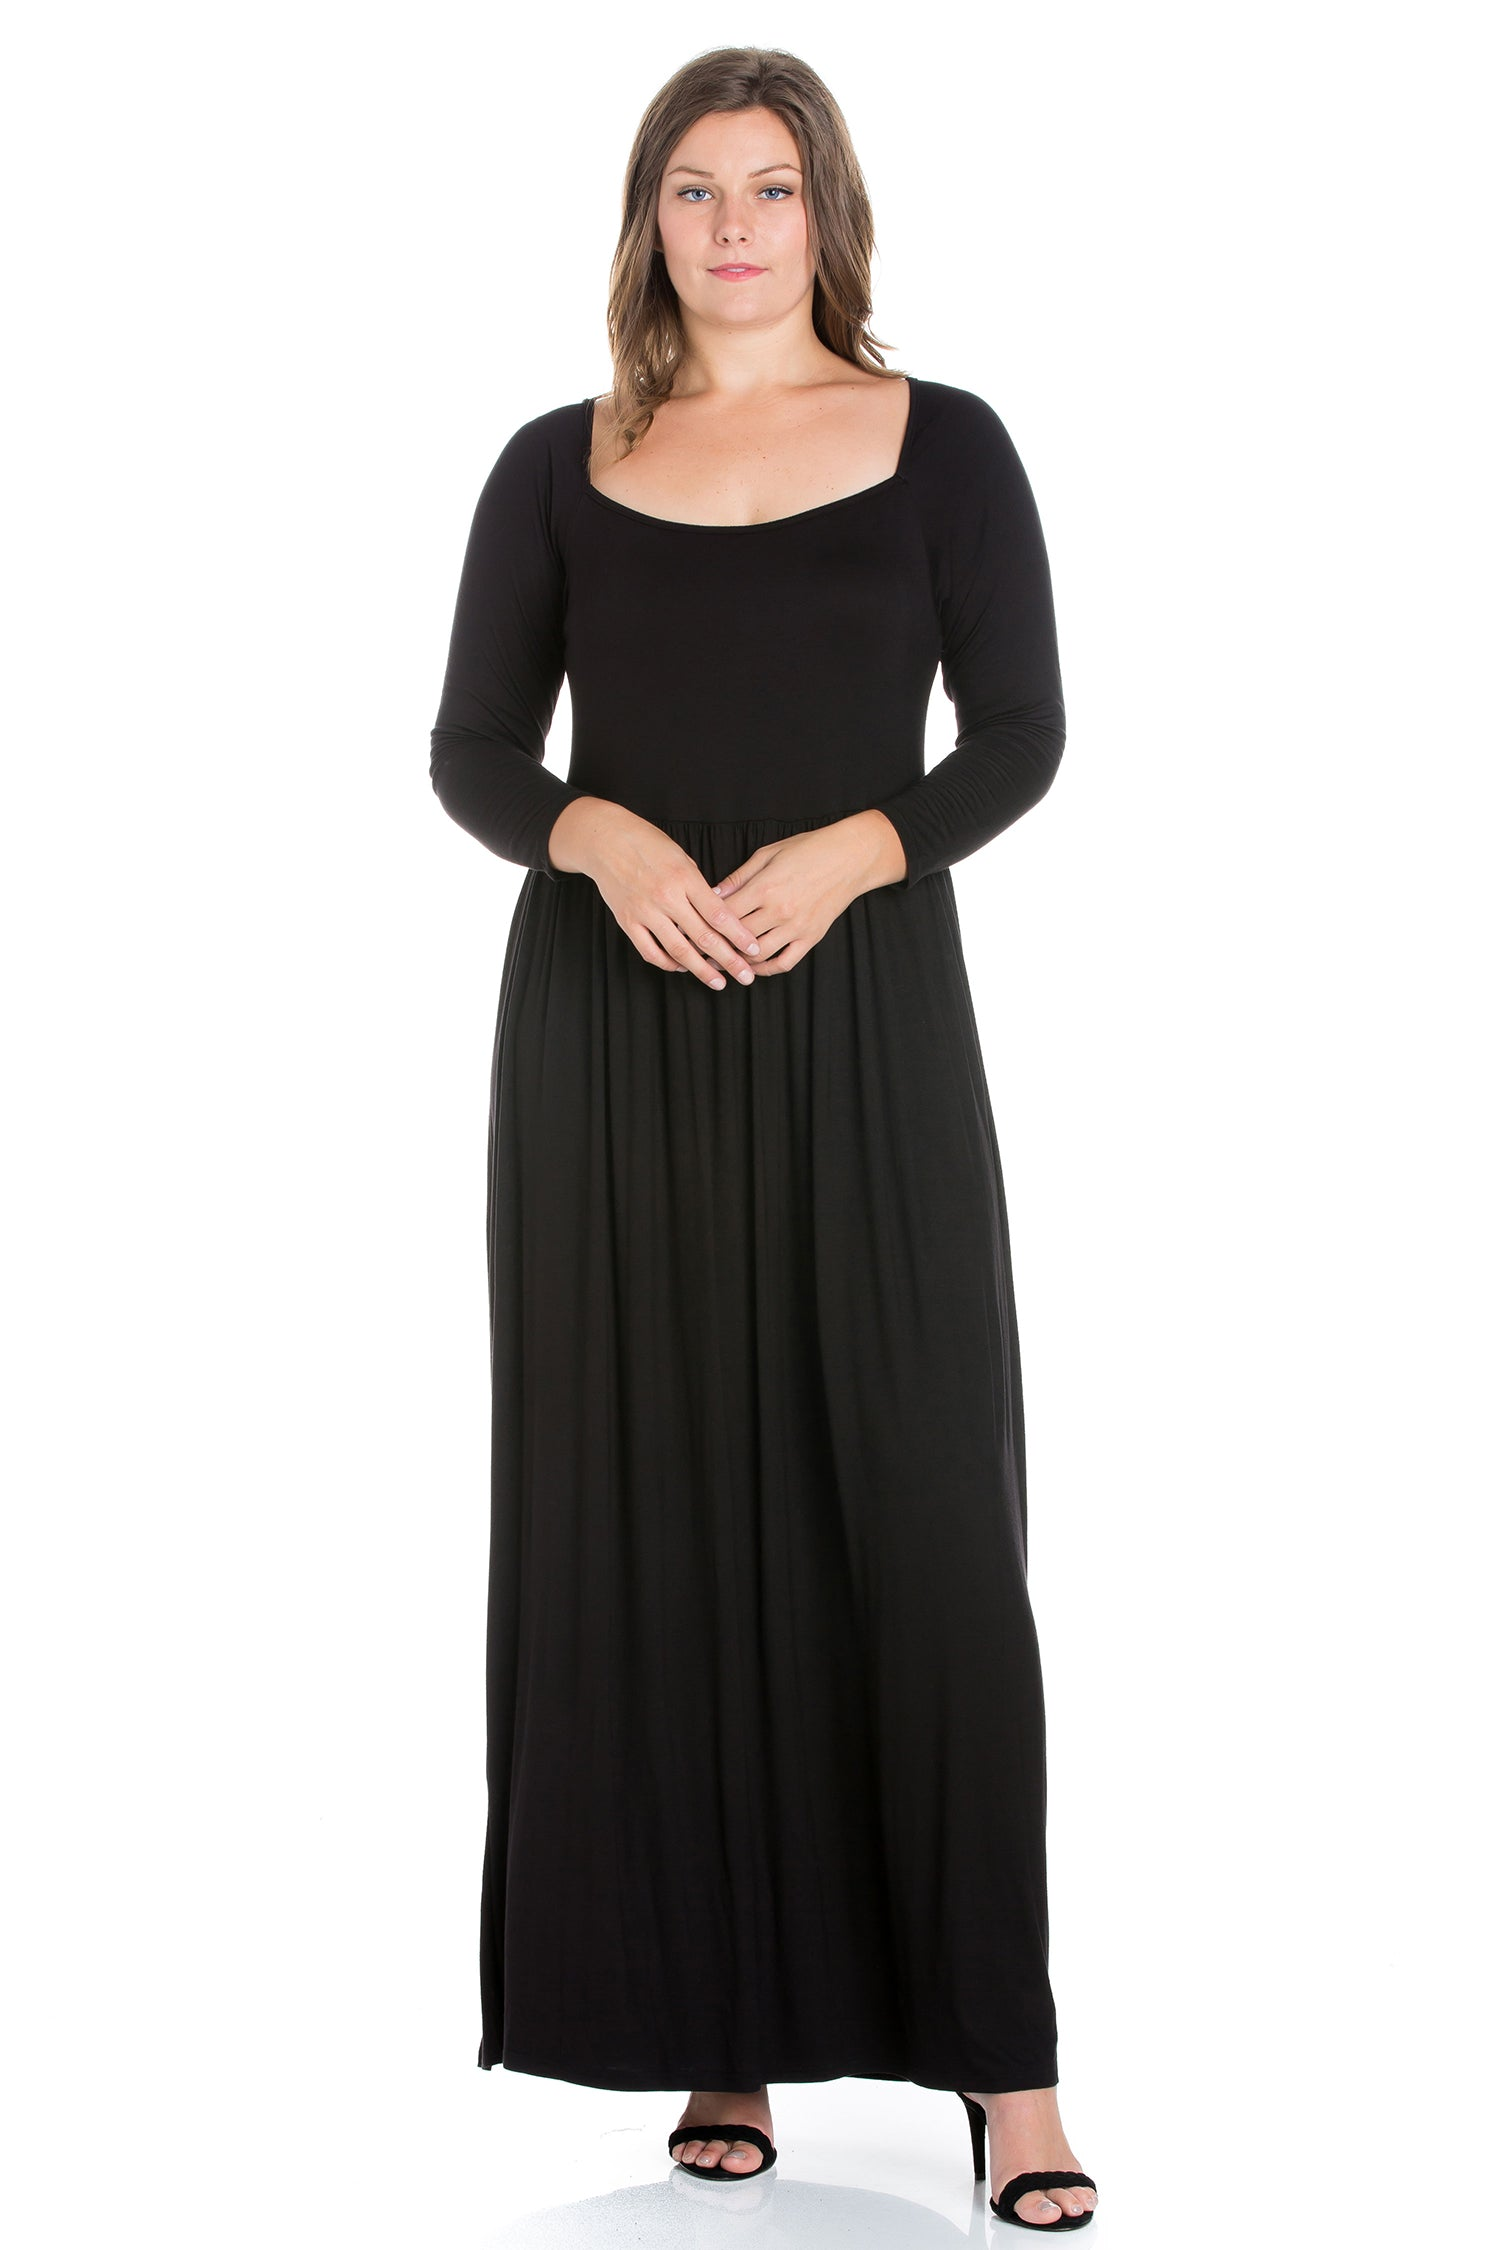 24seven Comfort Apparel Empire Waist Long Sleeve Plus Size Maxi Dress-DRESSES-24Seven Comfort Apparel-BLACK-1X-24/7 Comfort Apparel